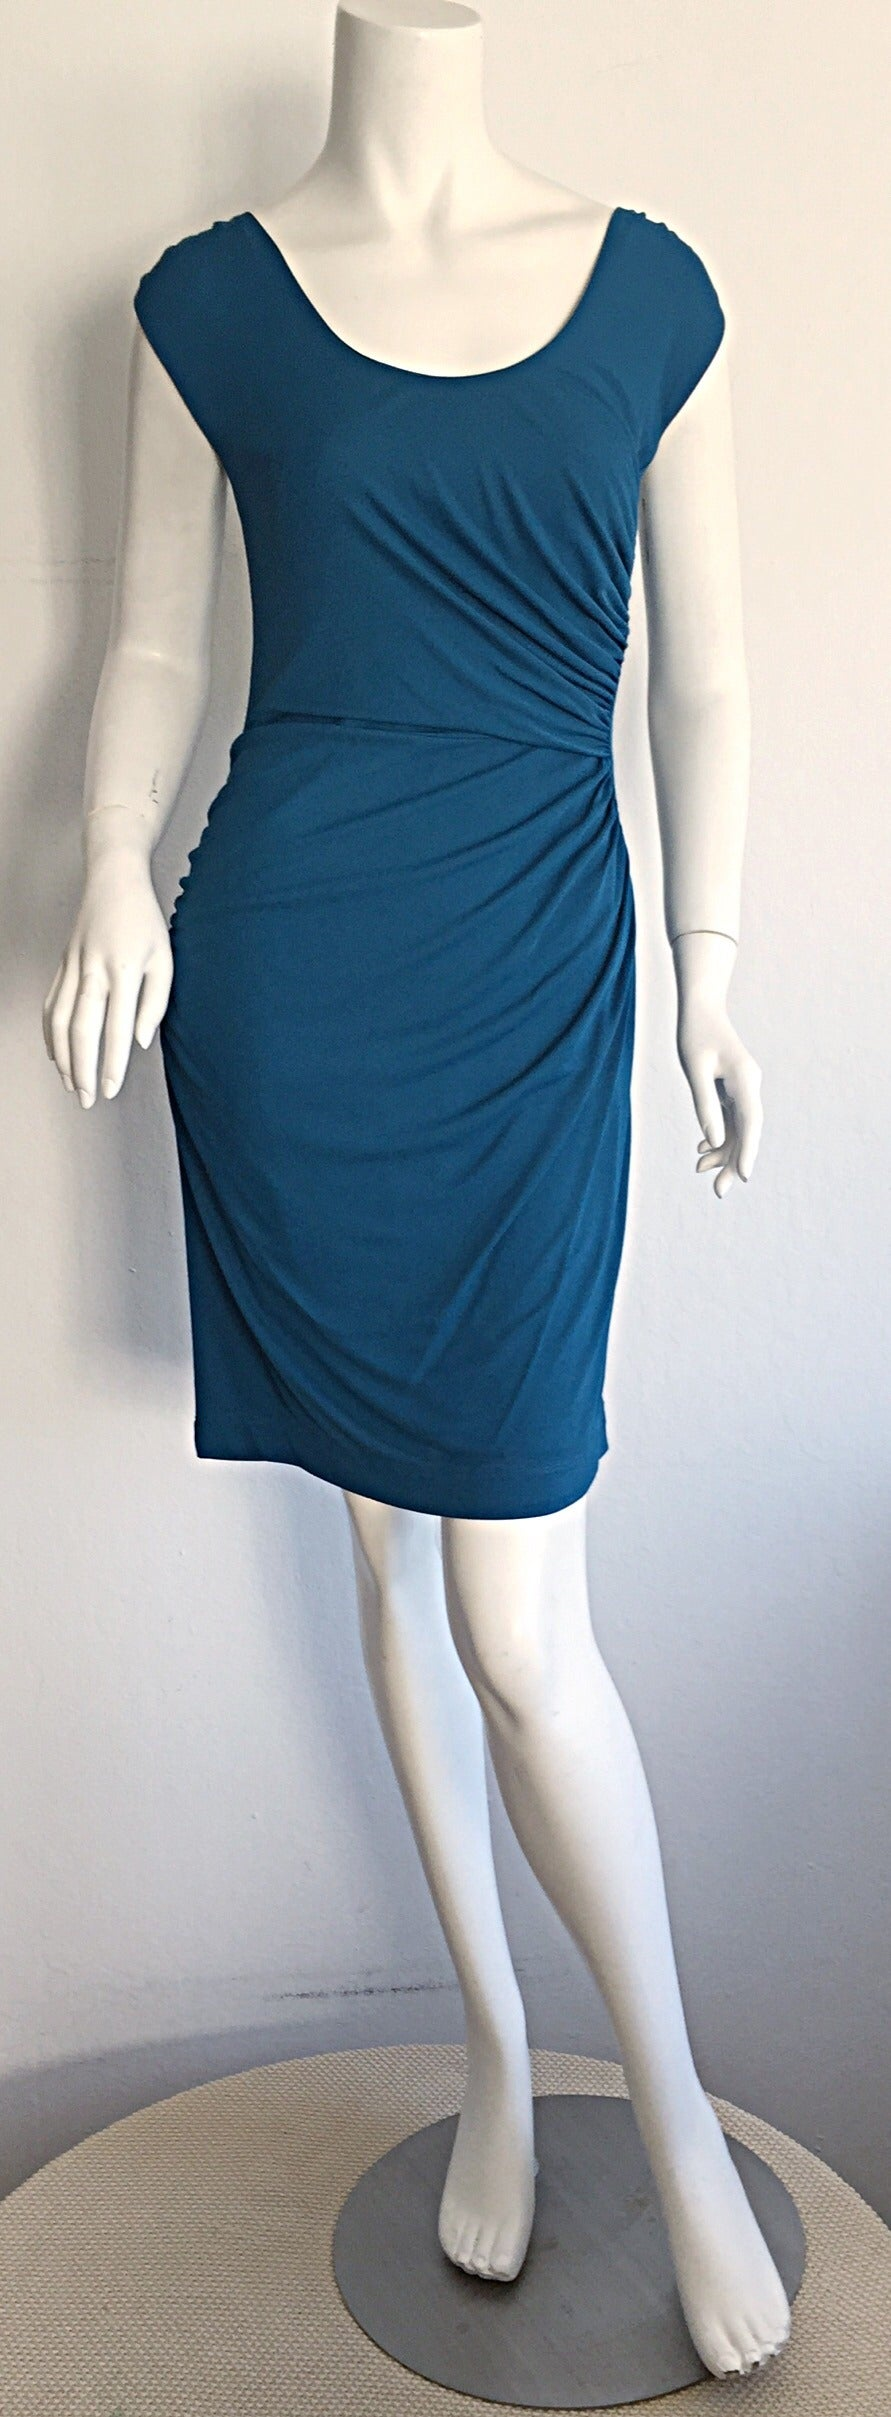 Beautiful blue 1990s Alberta Ferretti draped Grecian dress! Words cannot even begin to describe the mere beauty of this garment! The color, the fit, and the way in which this dress flatters the body make this a must have! Amazing construction on the